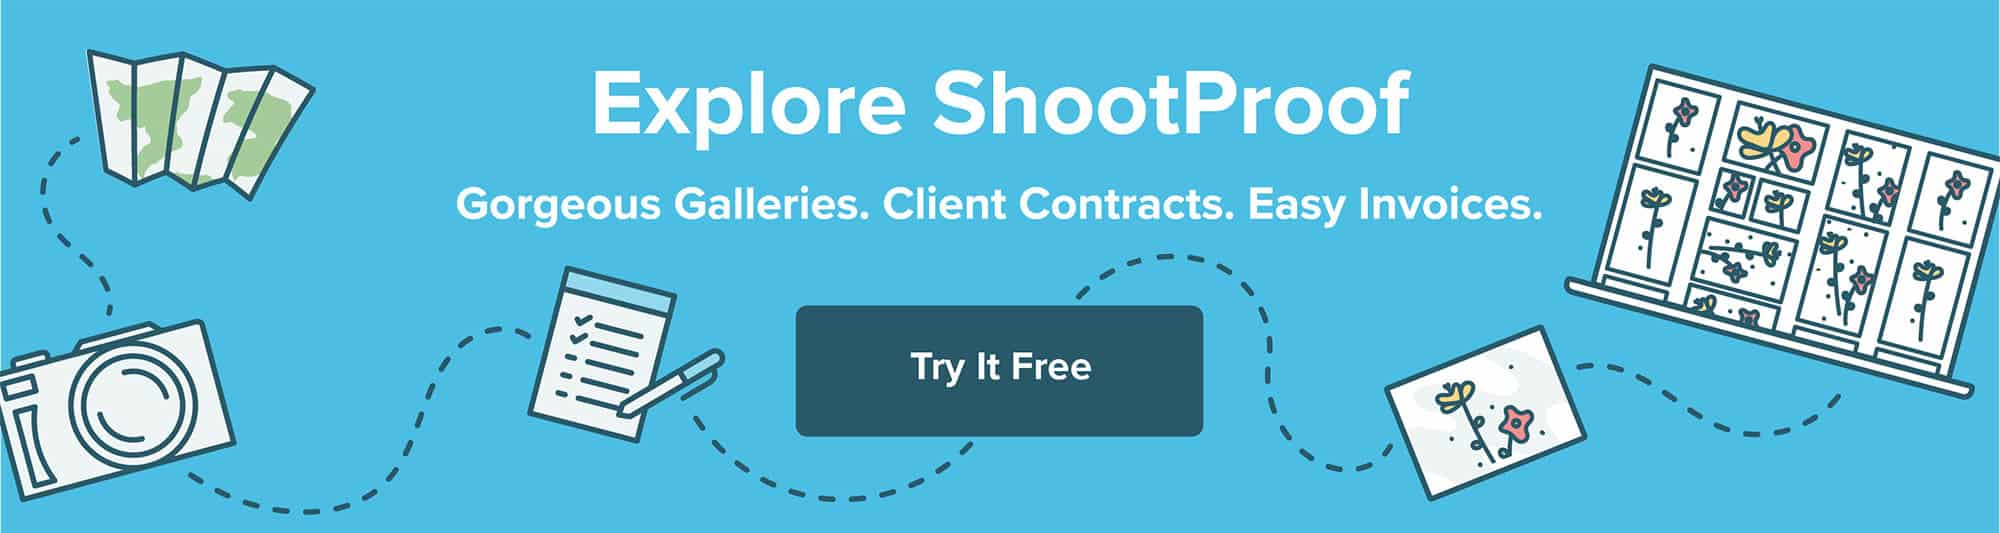 Explore ShootProof's gorgeous galleries, client contracts, and easy invoices. Try it for FREE!